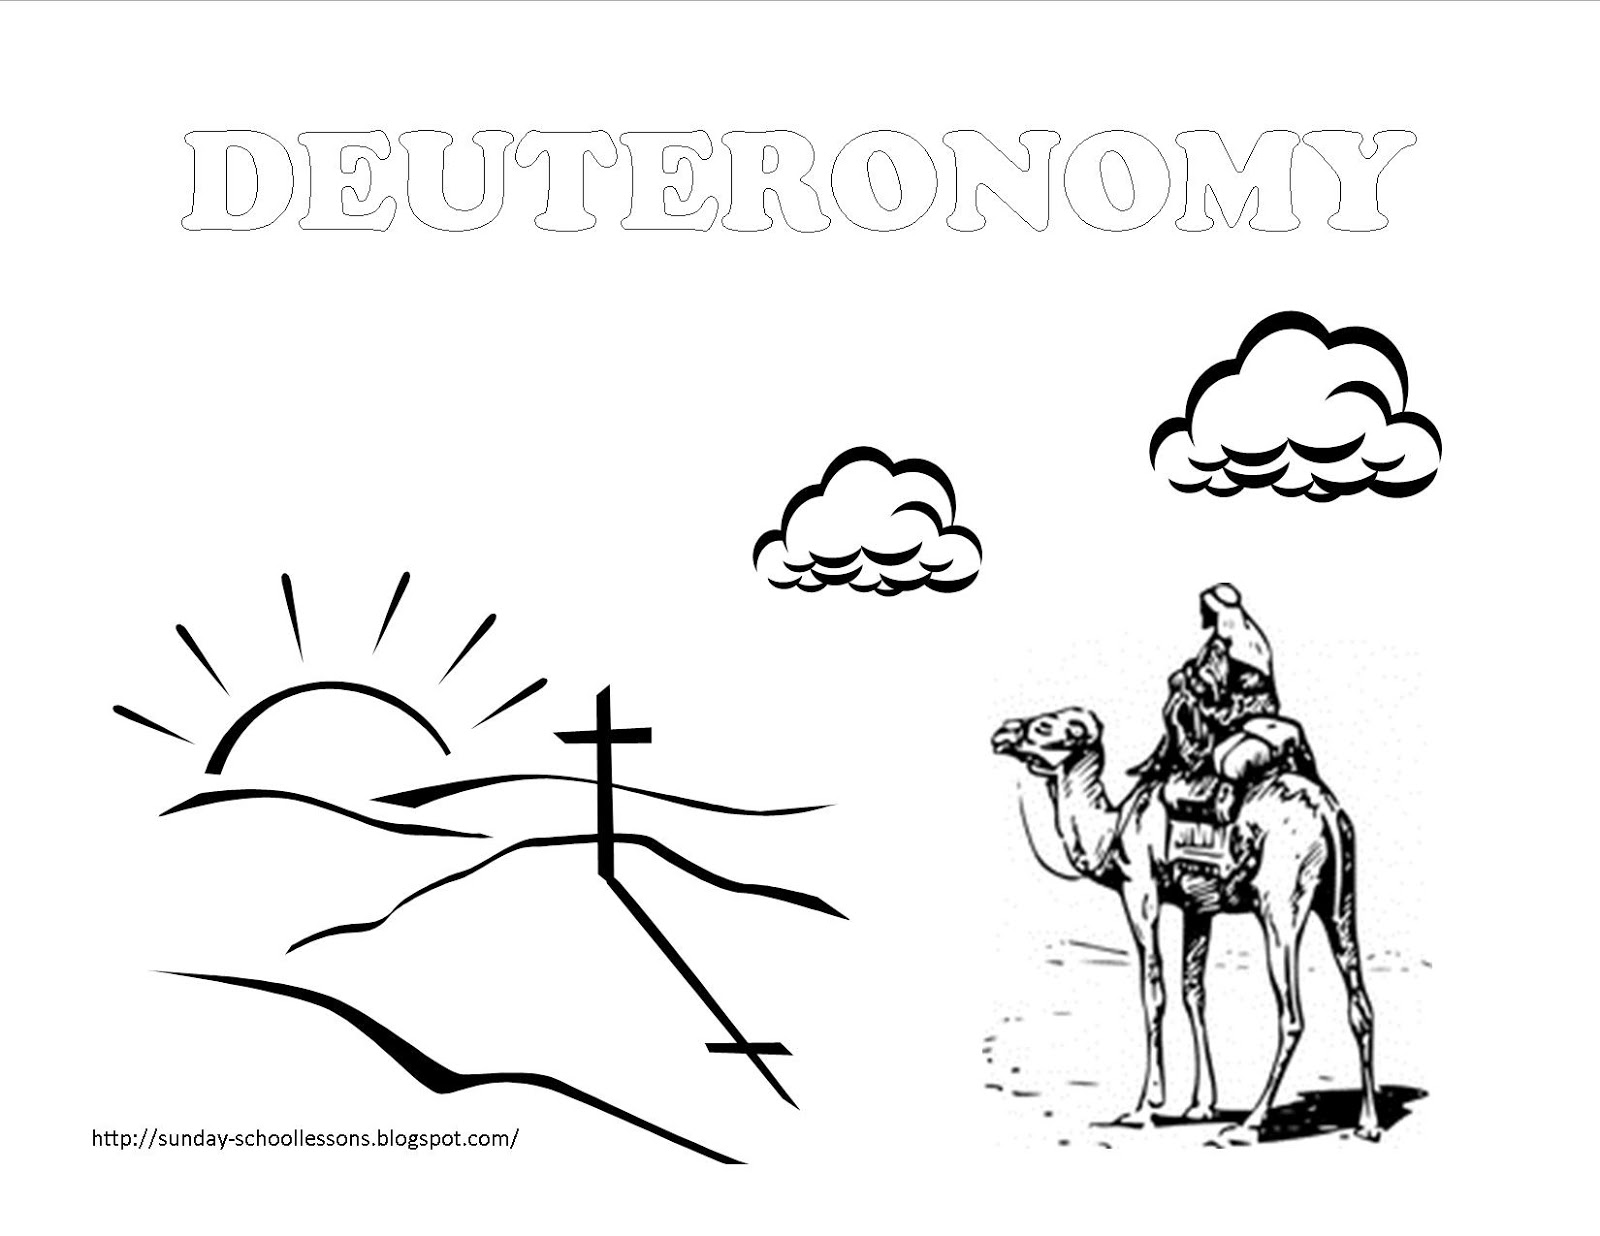 Sunday School Book Cover Page ~ Book of deuteronomy sunday school coloring pages